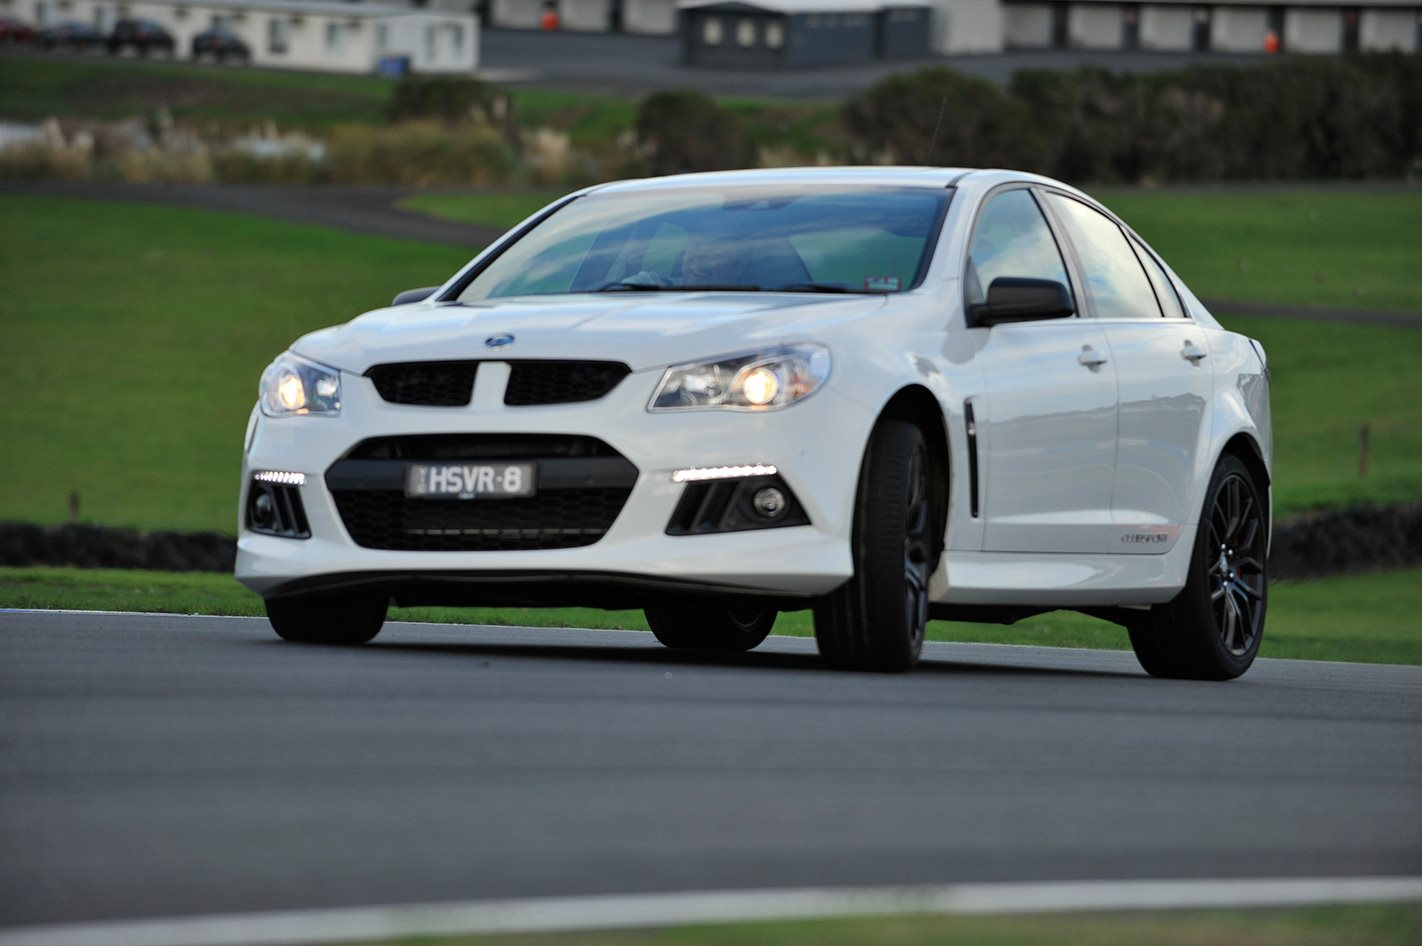 2013 HSV Gen-F Clubsport test.jpg